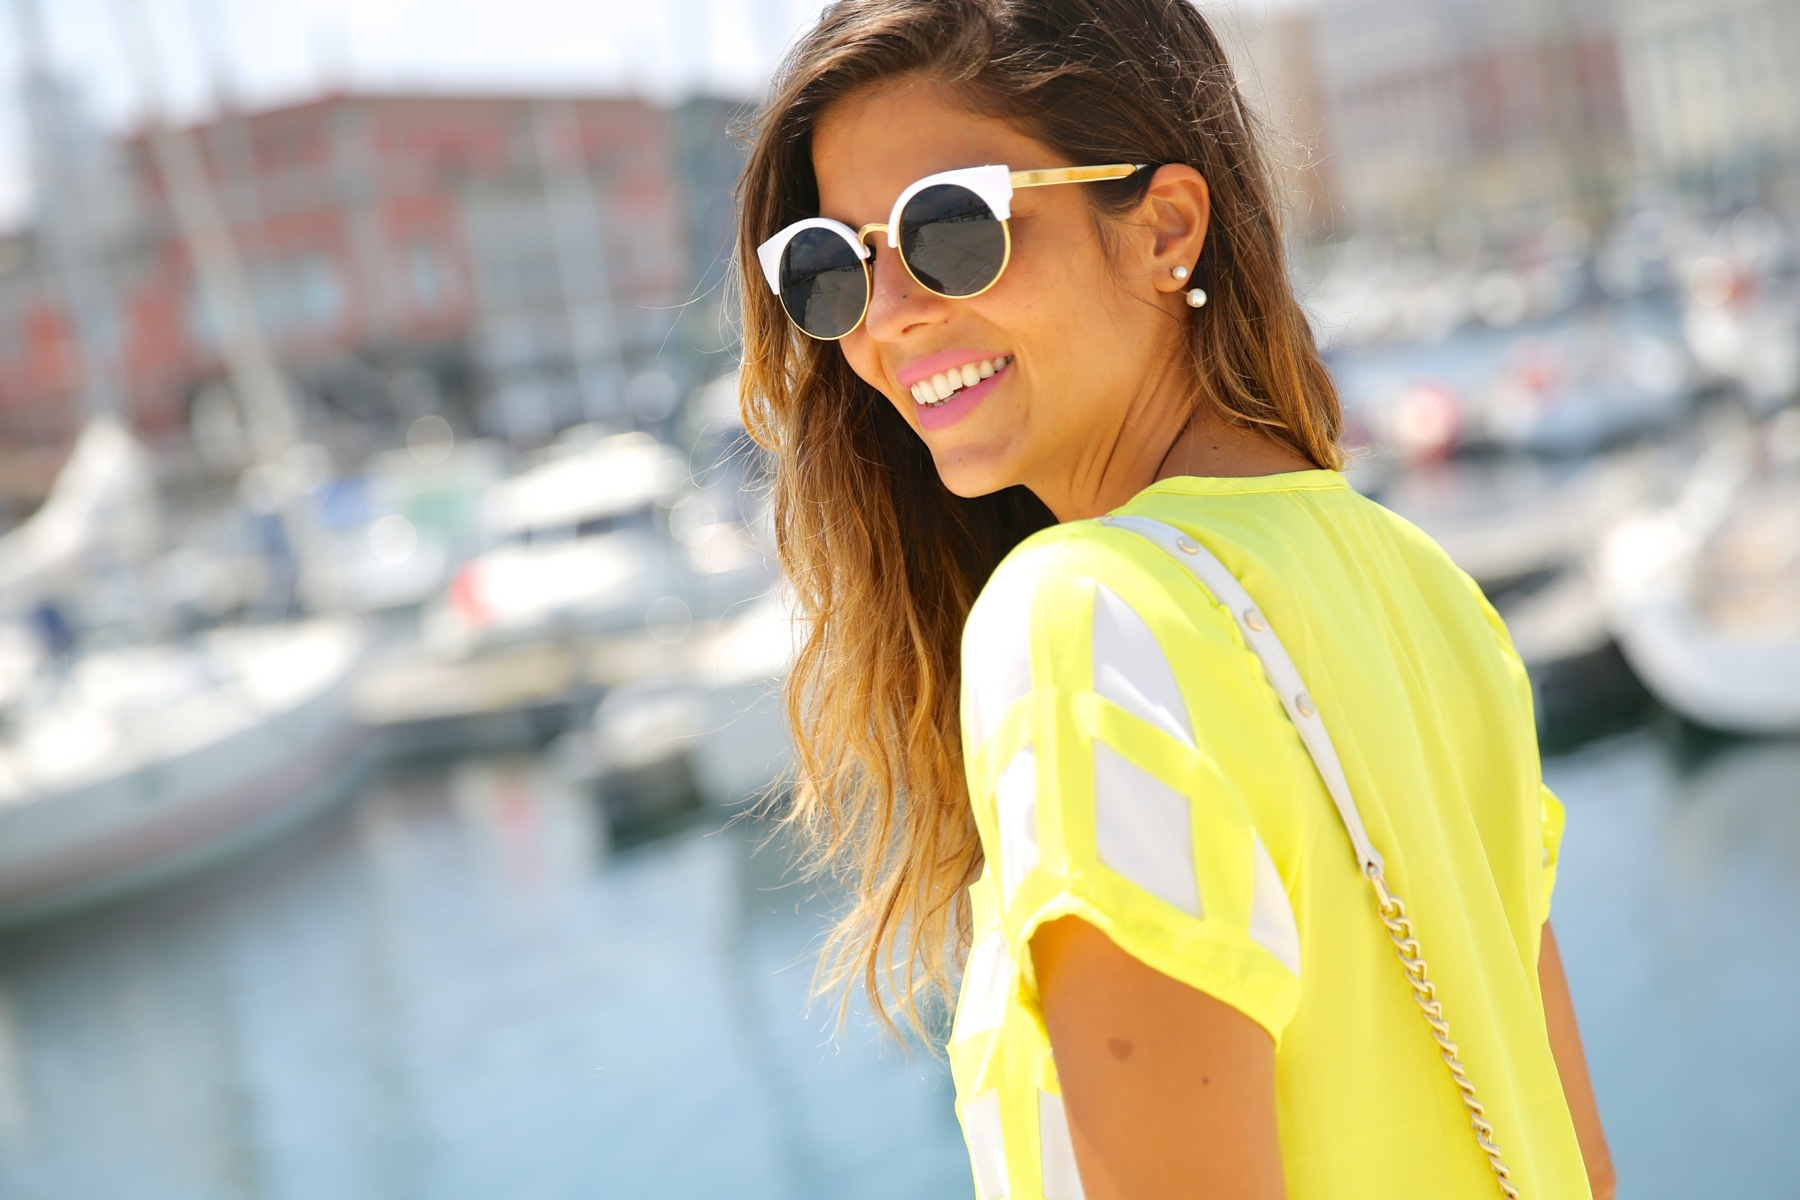 trendy_taste-look-outfit-street_style-ootd-blog-blogger-moda_españa-fashion_spain-coruña-galicia-sandalias_plataforma-platform_sandals-rebecca_minkoff-yellow-amarillo-vestido-dress-plaid-cuadros-3